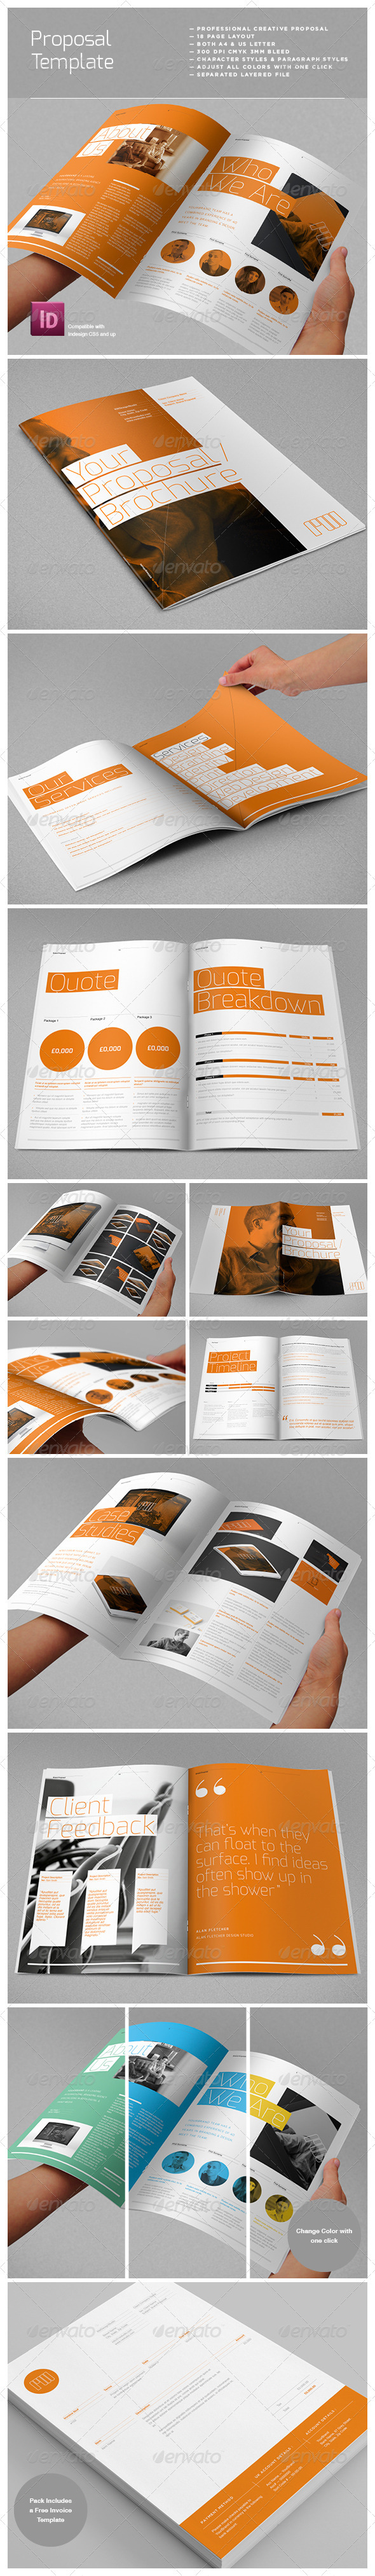 GraphicRiver Agency Proposal Template 3771597